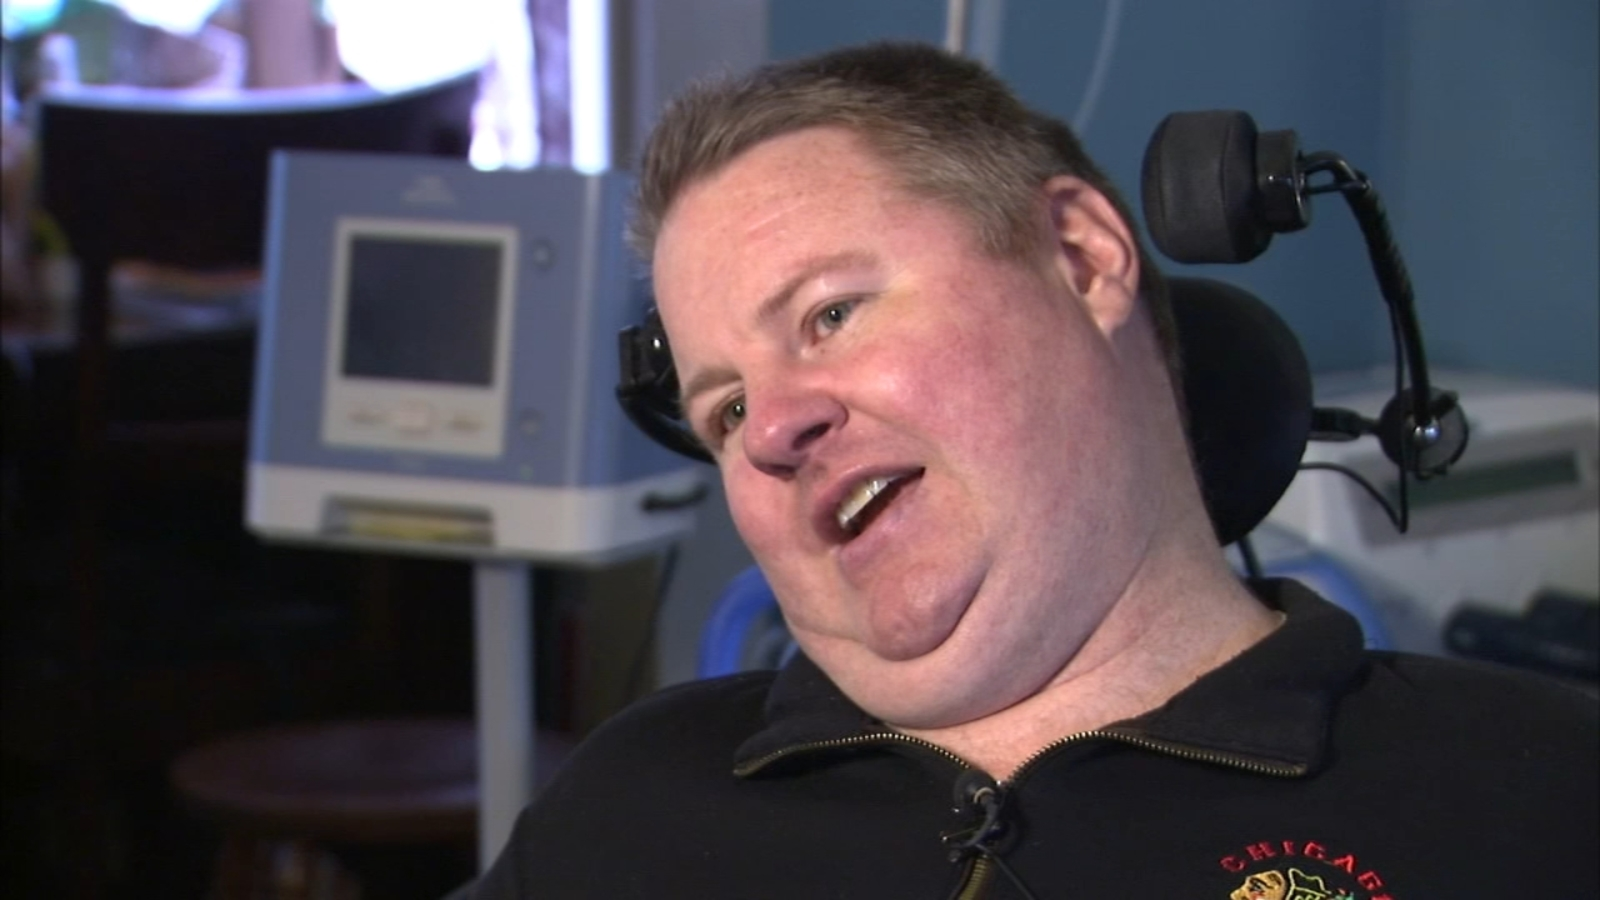 ALS researchers meet in Chicago as patients remain hopeful